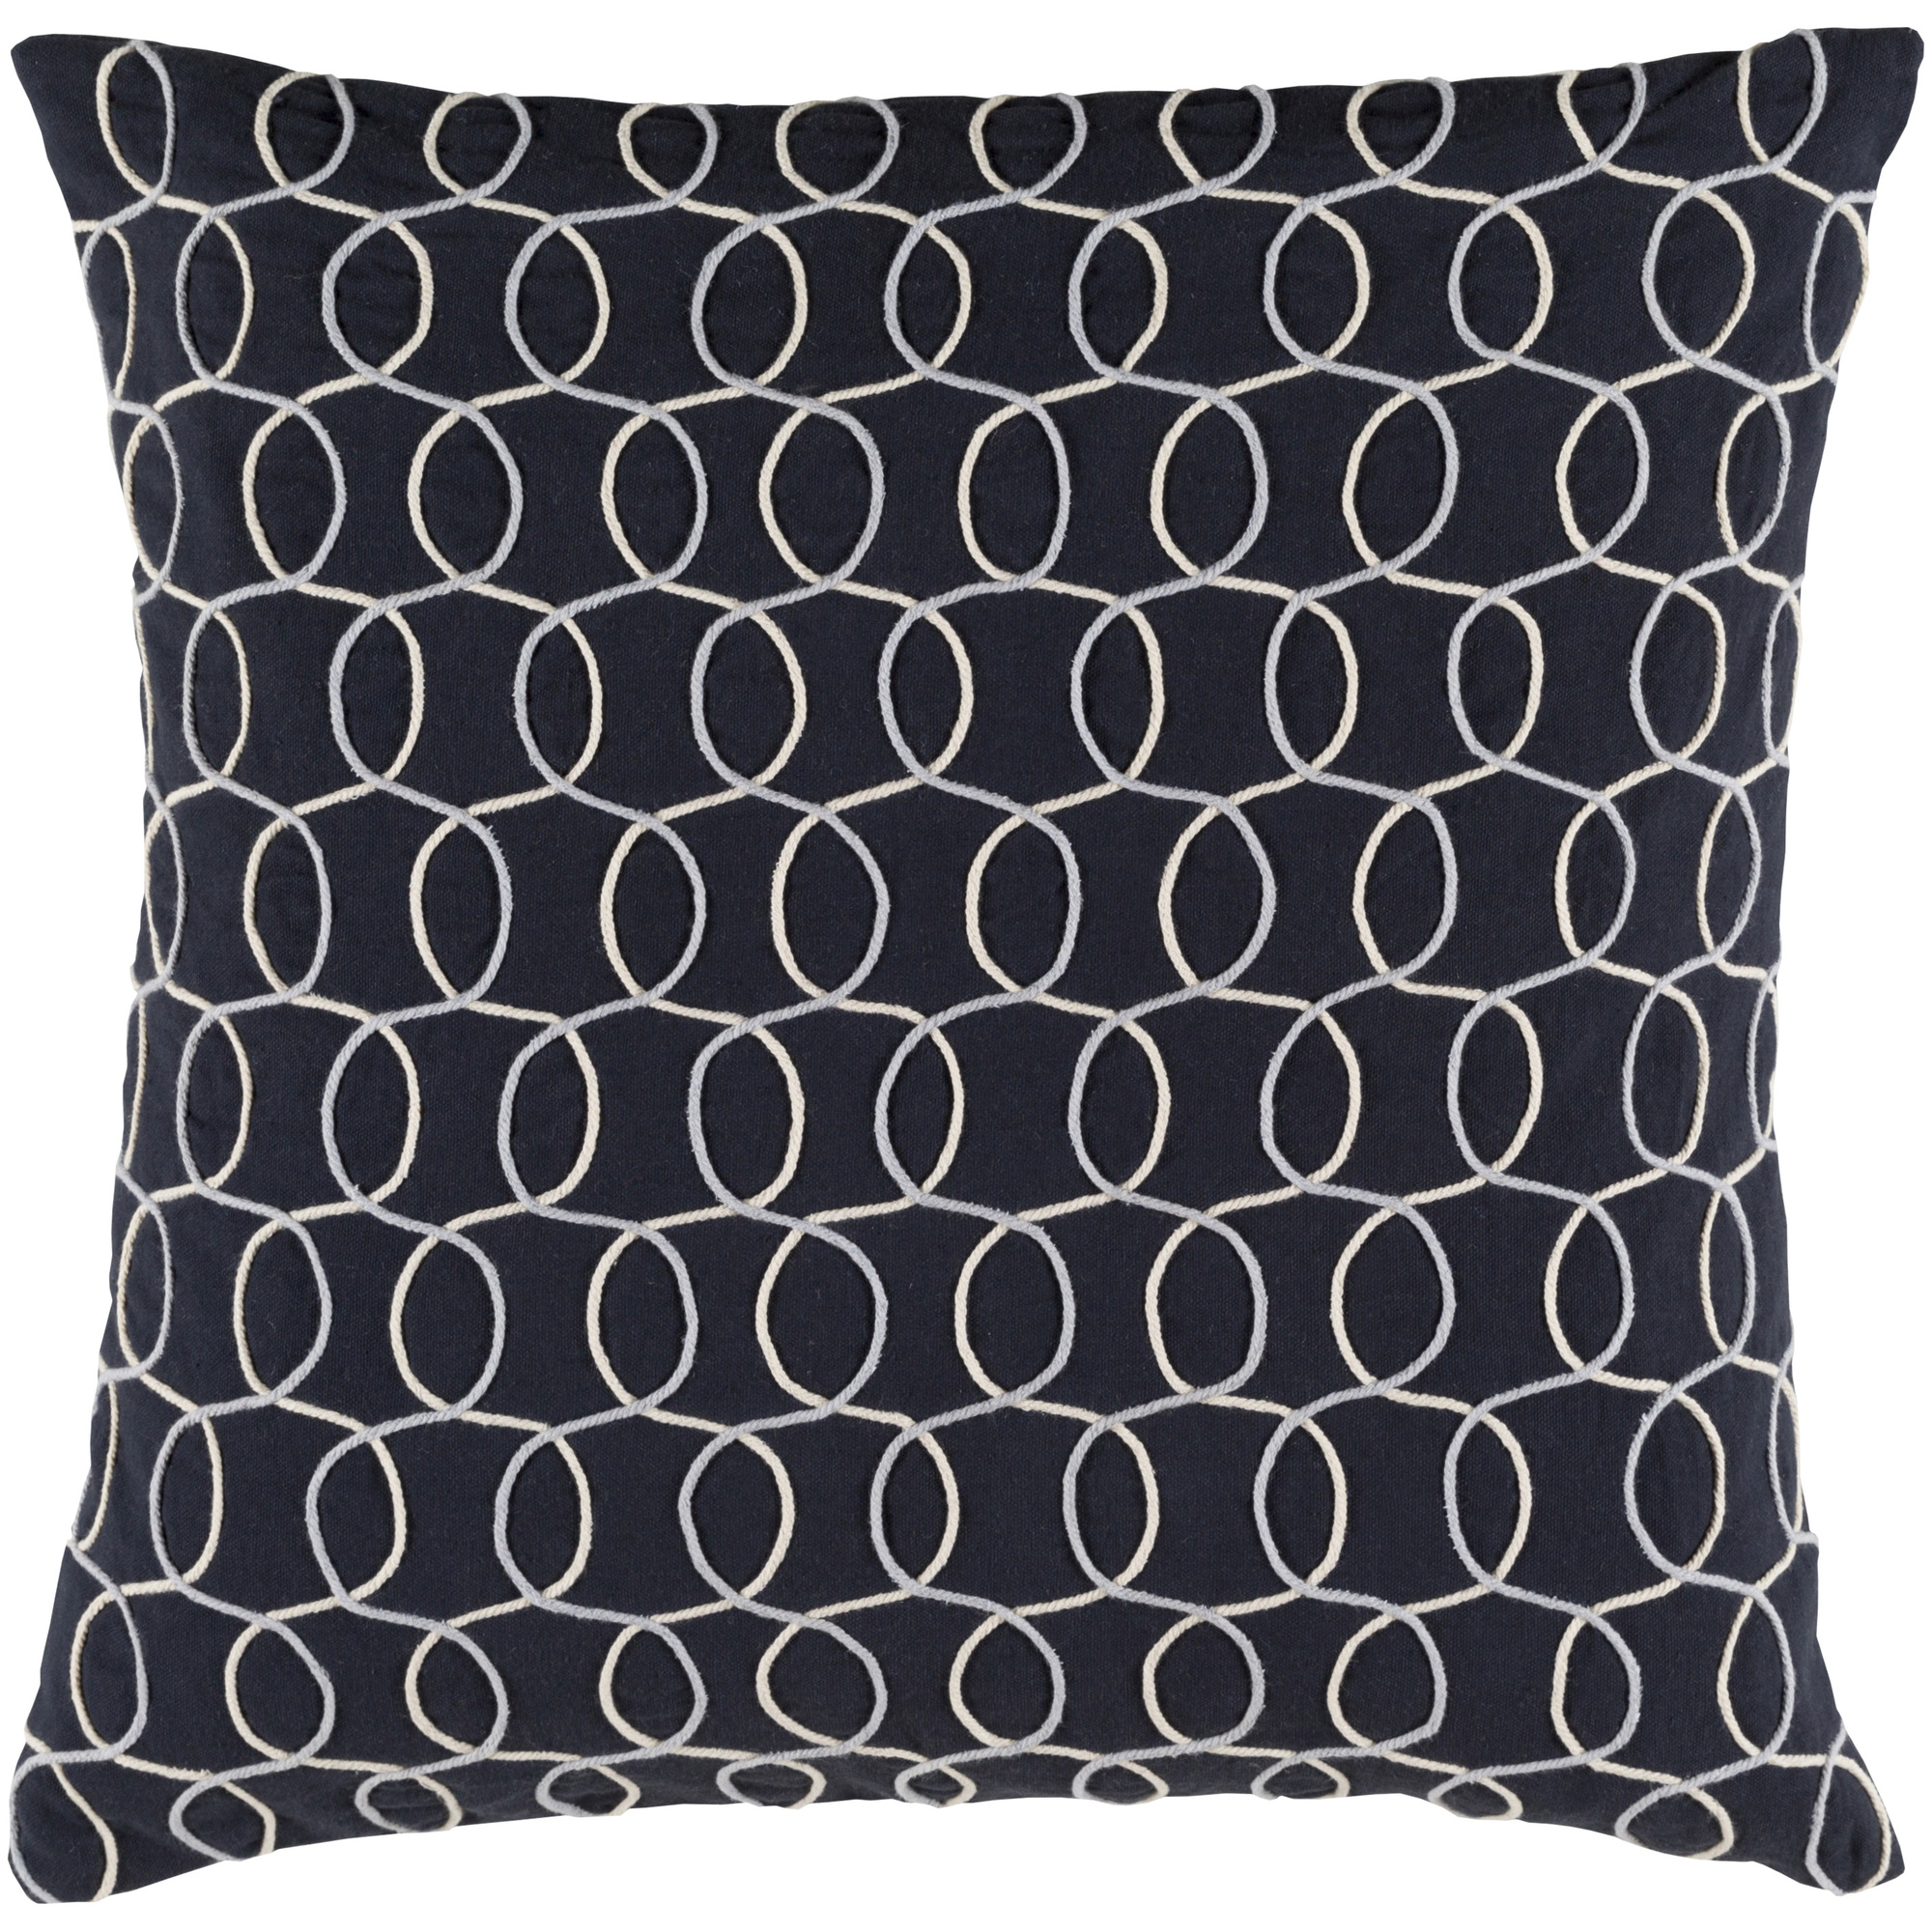 "Art of Knot Lackington 13"" x 19"" Pillow Cover"